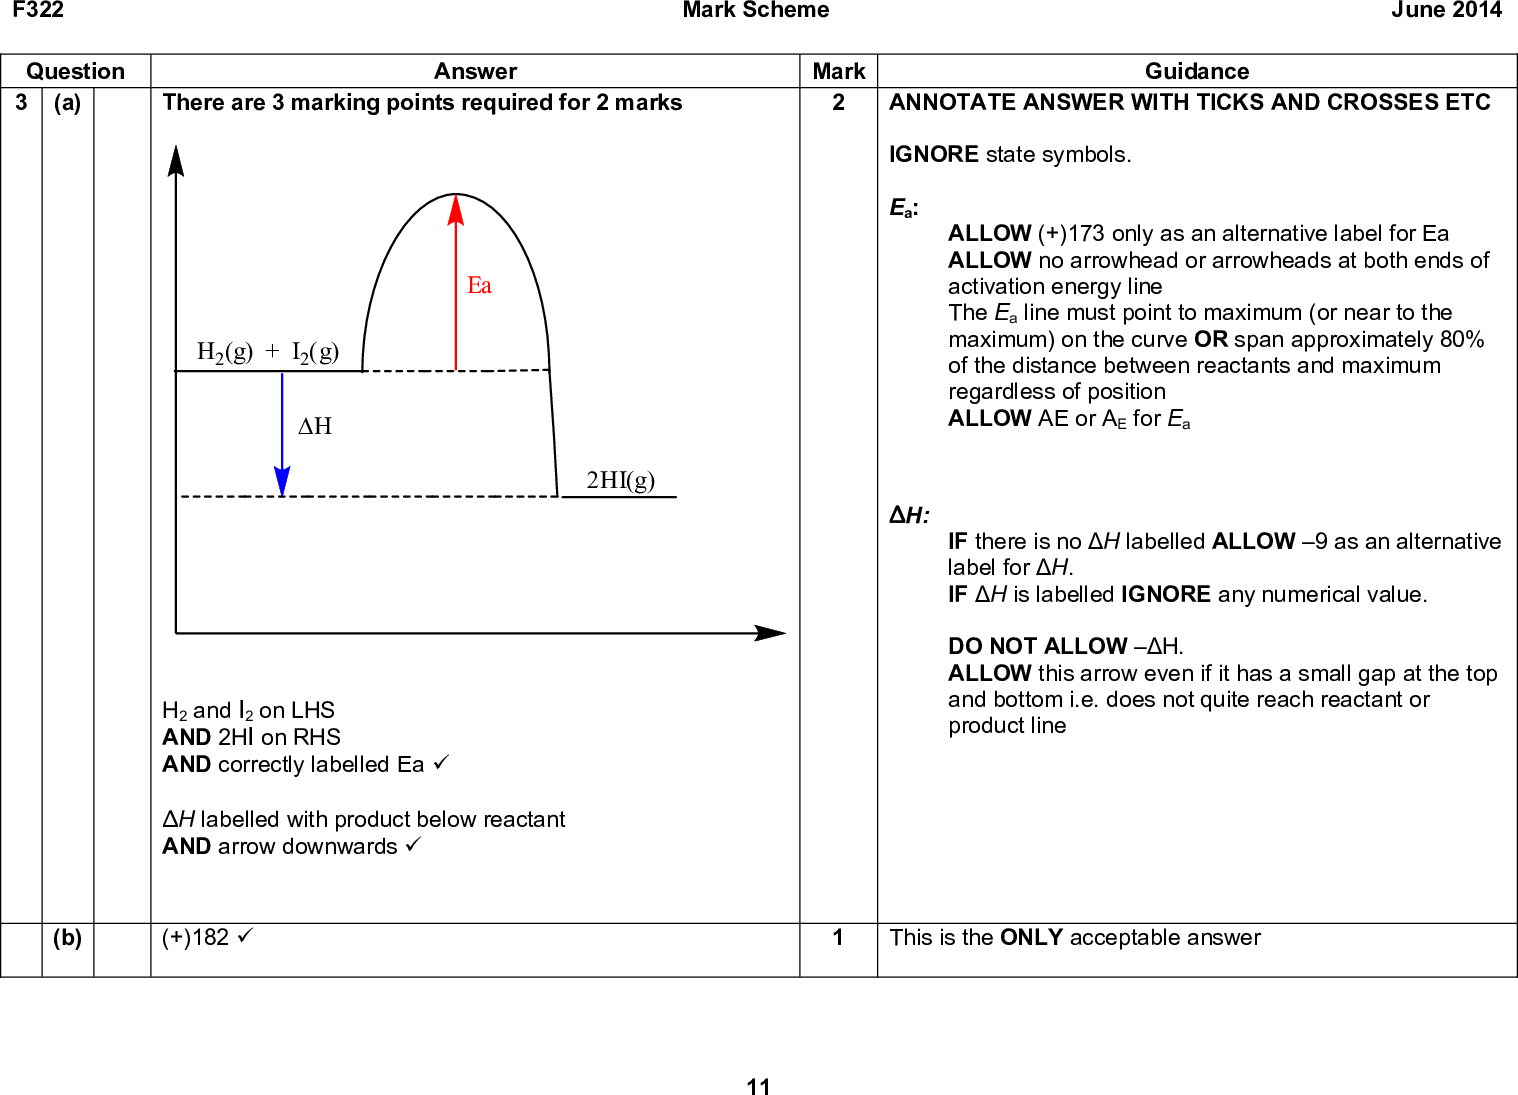 F322 Question 3 (a) There are 3 marking points required for 2 marks Answer Mark Guidance Mark Scheme June 2014 ANNOTATE ANSWER WITH TICKS AND CROSSES ETC IGNORE state symbols. Ea: ALLOW (+)173 only as an alternative label for Ea ALLOW no arrowhead or arrowheads at both ends of activation energy line The Ea line must point to maximum (or near to the maximum) on the curve OR span approximately 80% of the distance between reactants and maximum regardless of position ALLOW AE or AE for Ea IF there is no H labelled ALLOW 9 as an alternative label for H. IF H is labelled IGNORE any numerical value. DO NOT ALLOW H. ALLOW this arrow even if it has a small gap at the top and bottom i.e. does not quite reach reactant or product line This is the ONLY acceptable answer Ea H2(g) + I2(g) (cid:39)(cid:43) 2HI(g) H: H2 and I2 on LHS AND 2HI on RHS AND correctly labelled Ea (cid:57) H labelled with product below reactant AND arrow downwards (cid:57) (b) (+)182 (cid:57) 11<br />  Answer Look at answer if +63 kJ AWARD 2 marks If 63 (no sign) OR-63 (incorrect sign) AWARD 1 mark No of moles of HI = 14 moles (cid:57) Enthalpy Change = +63 kJ (cid:57) (d) (i) Rate of the forward reaction is equal to the rate of the reverse F322 Question (c) (ii) reaction (cid:57) OR concentrations do not change(cid:57) More H2 and I2 OR less HI (cid:57) (equilibrium position shifts) to the left AND (Forward) reaction is exothermic OR reverse reaction is endothermic OR in the endothermic direction(cid:57) Mark Scheme June 2014 Mark Guidance ALLOW one mark for +126 kJ Sign and value required. ALLOW ECF from incorrect number of moles of HI ALLOW both reactions occur at same rate IGNORE conc. of reactants = conc. of products 2 Mark each point independently ALLOW more reactants OR less products Note: ALLOW suitable alternatives for to the left e.g. towards reactants OR towards H2 / I2 OR in reverse direction OR favours the left. ALLOW gives out heat for exothermic ALLOW takes in heat for endothermic IGNORE res